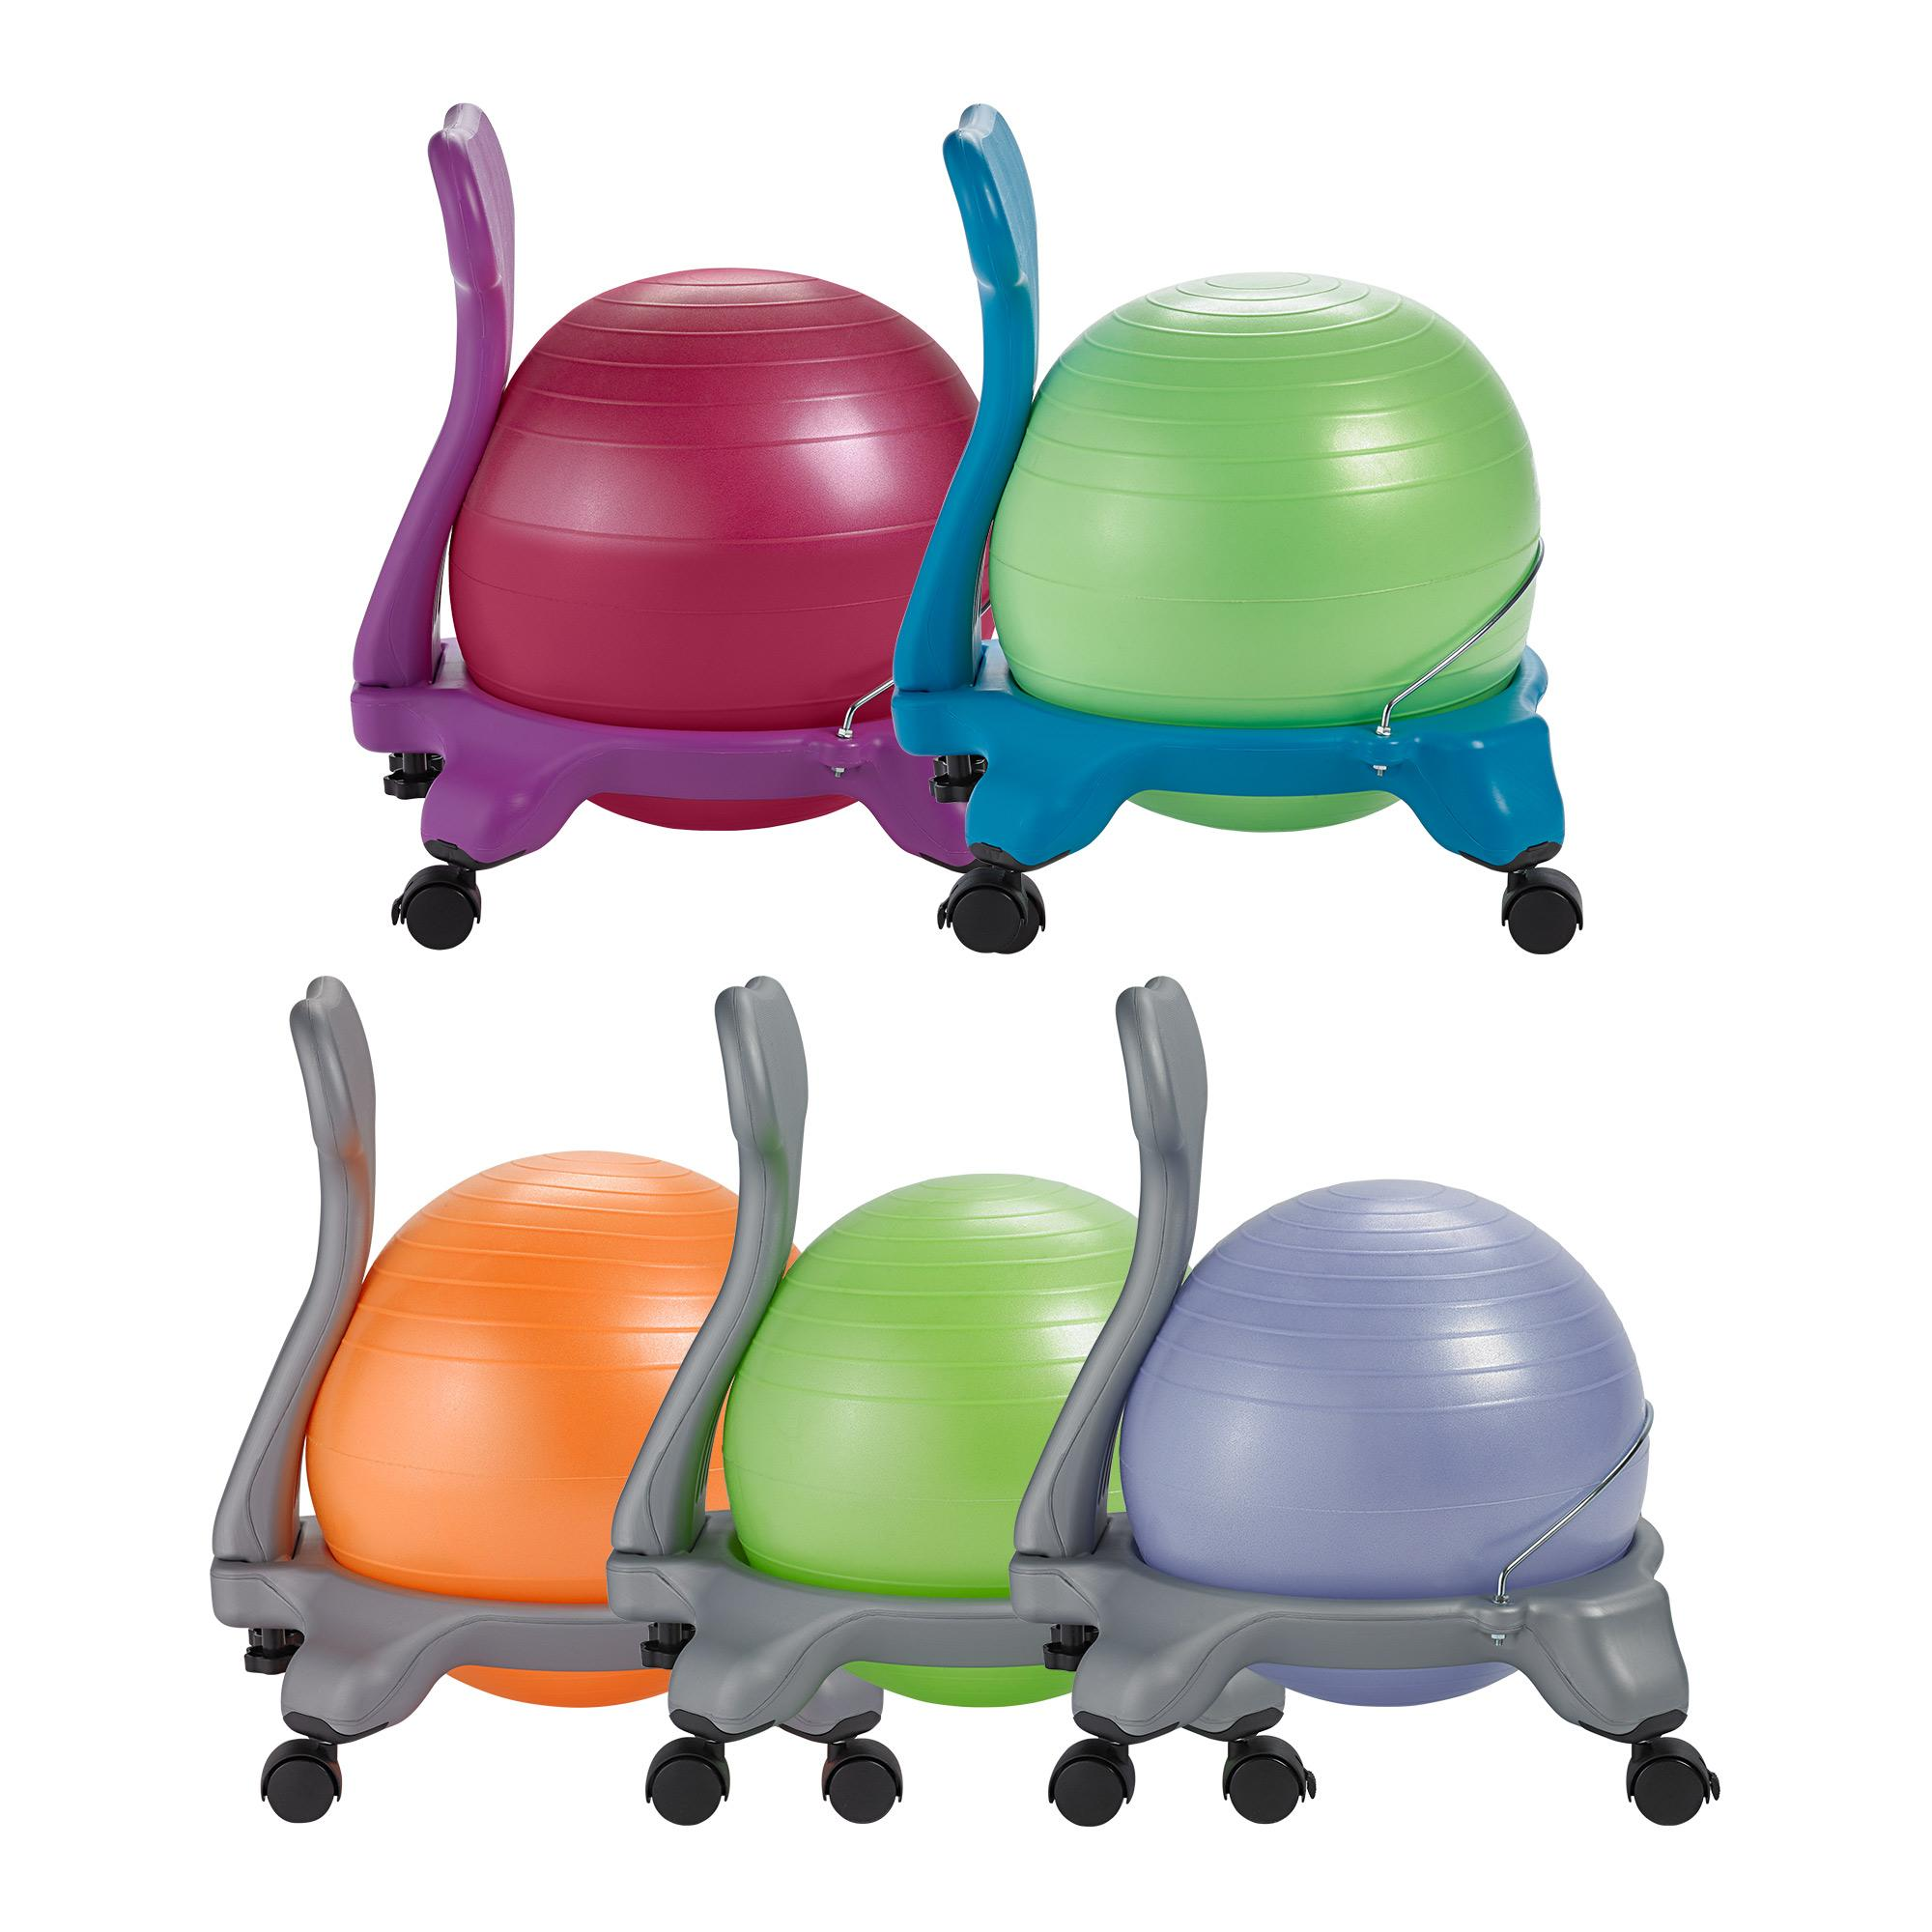 gaiam kids balance ball chair classic. Black Bedroom Furniture Sets. Home Design Ideas